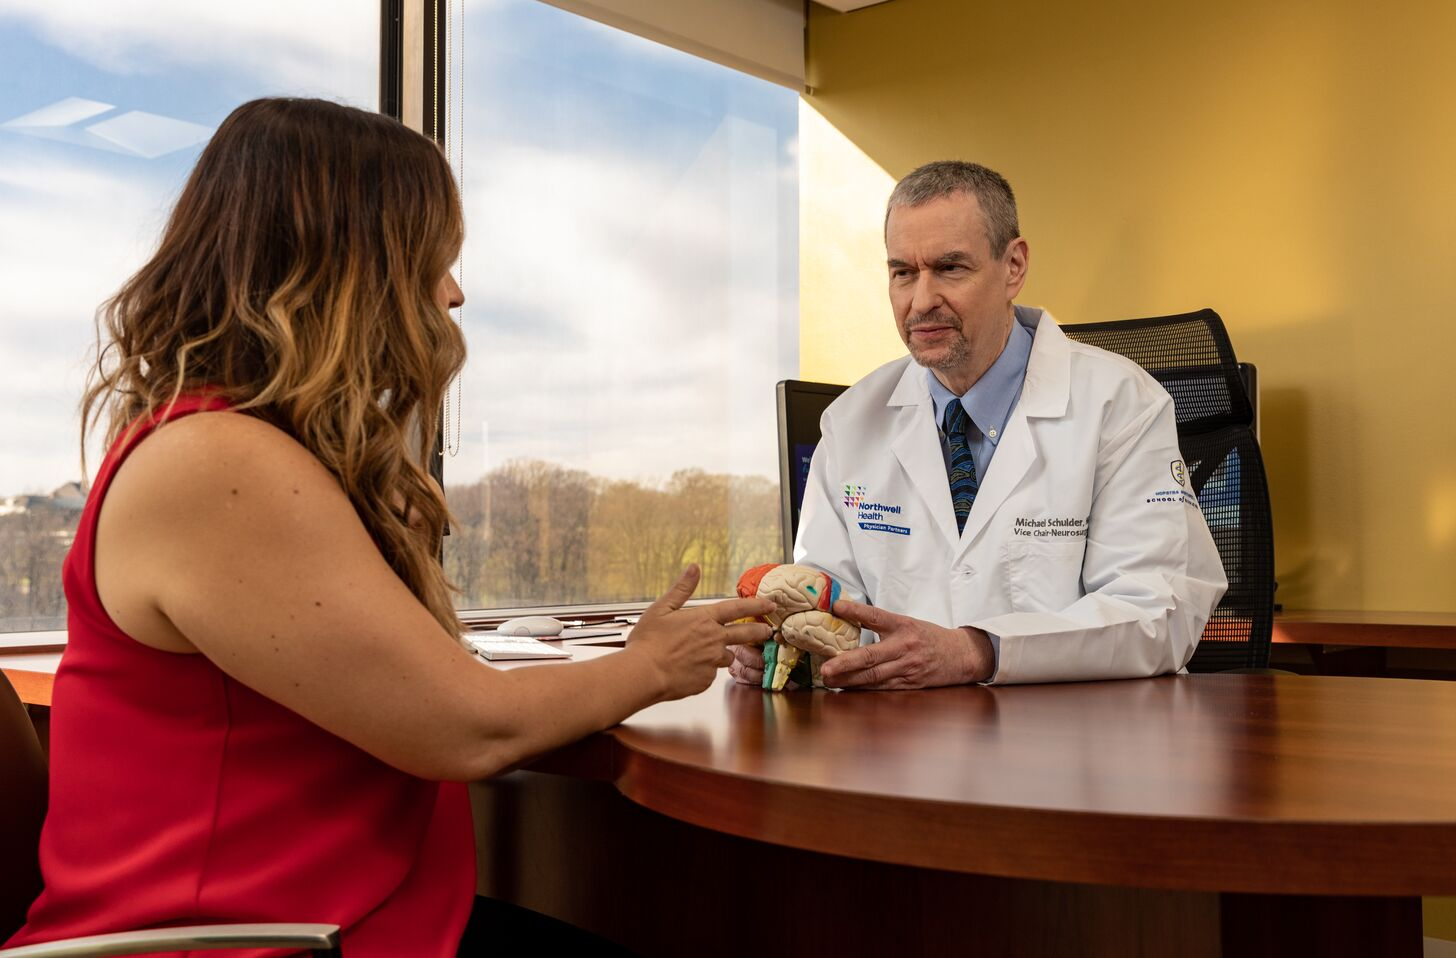 Michael Schulder, MD, sits with a female patient